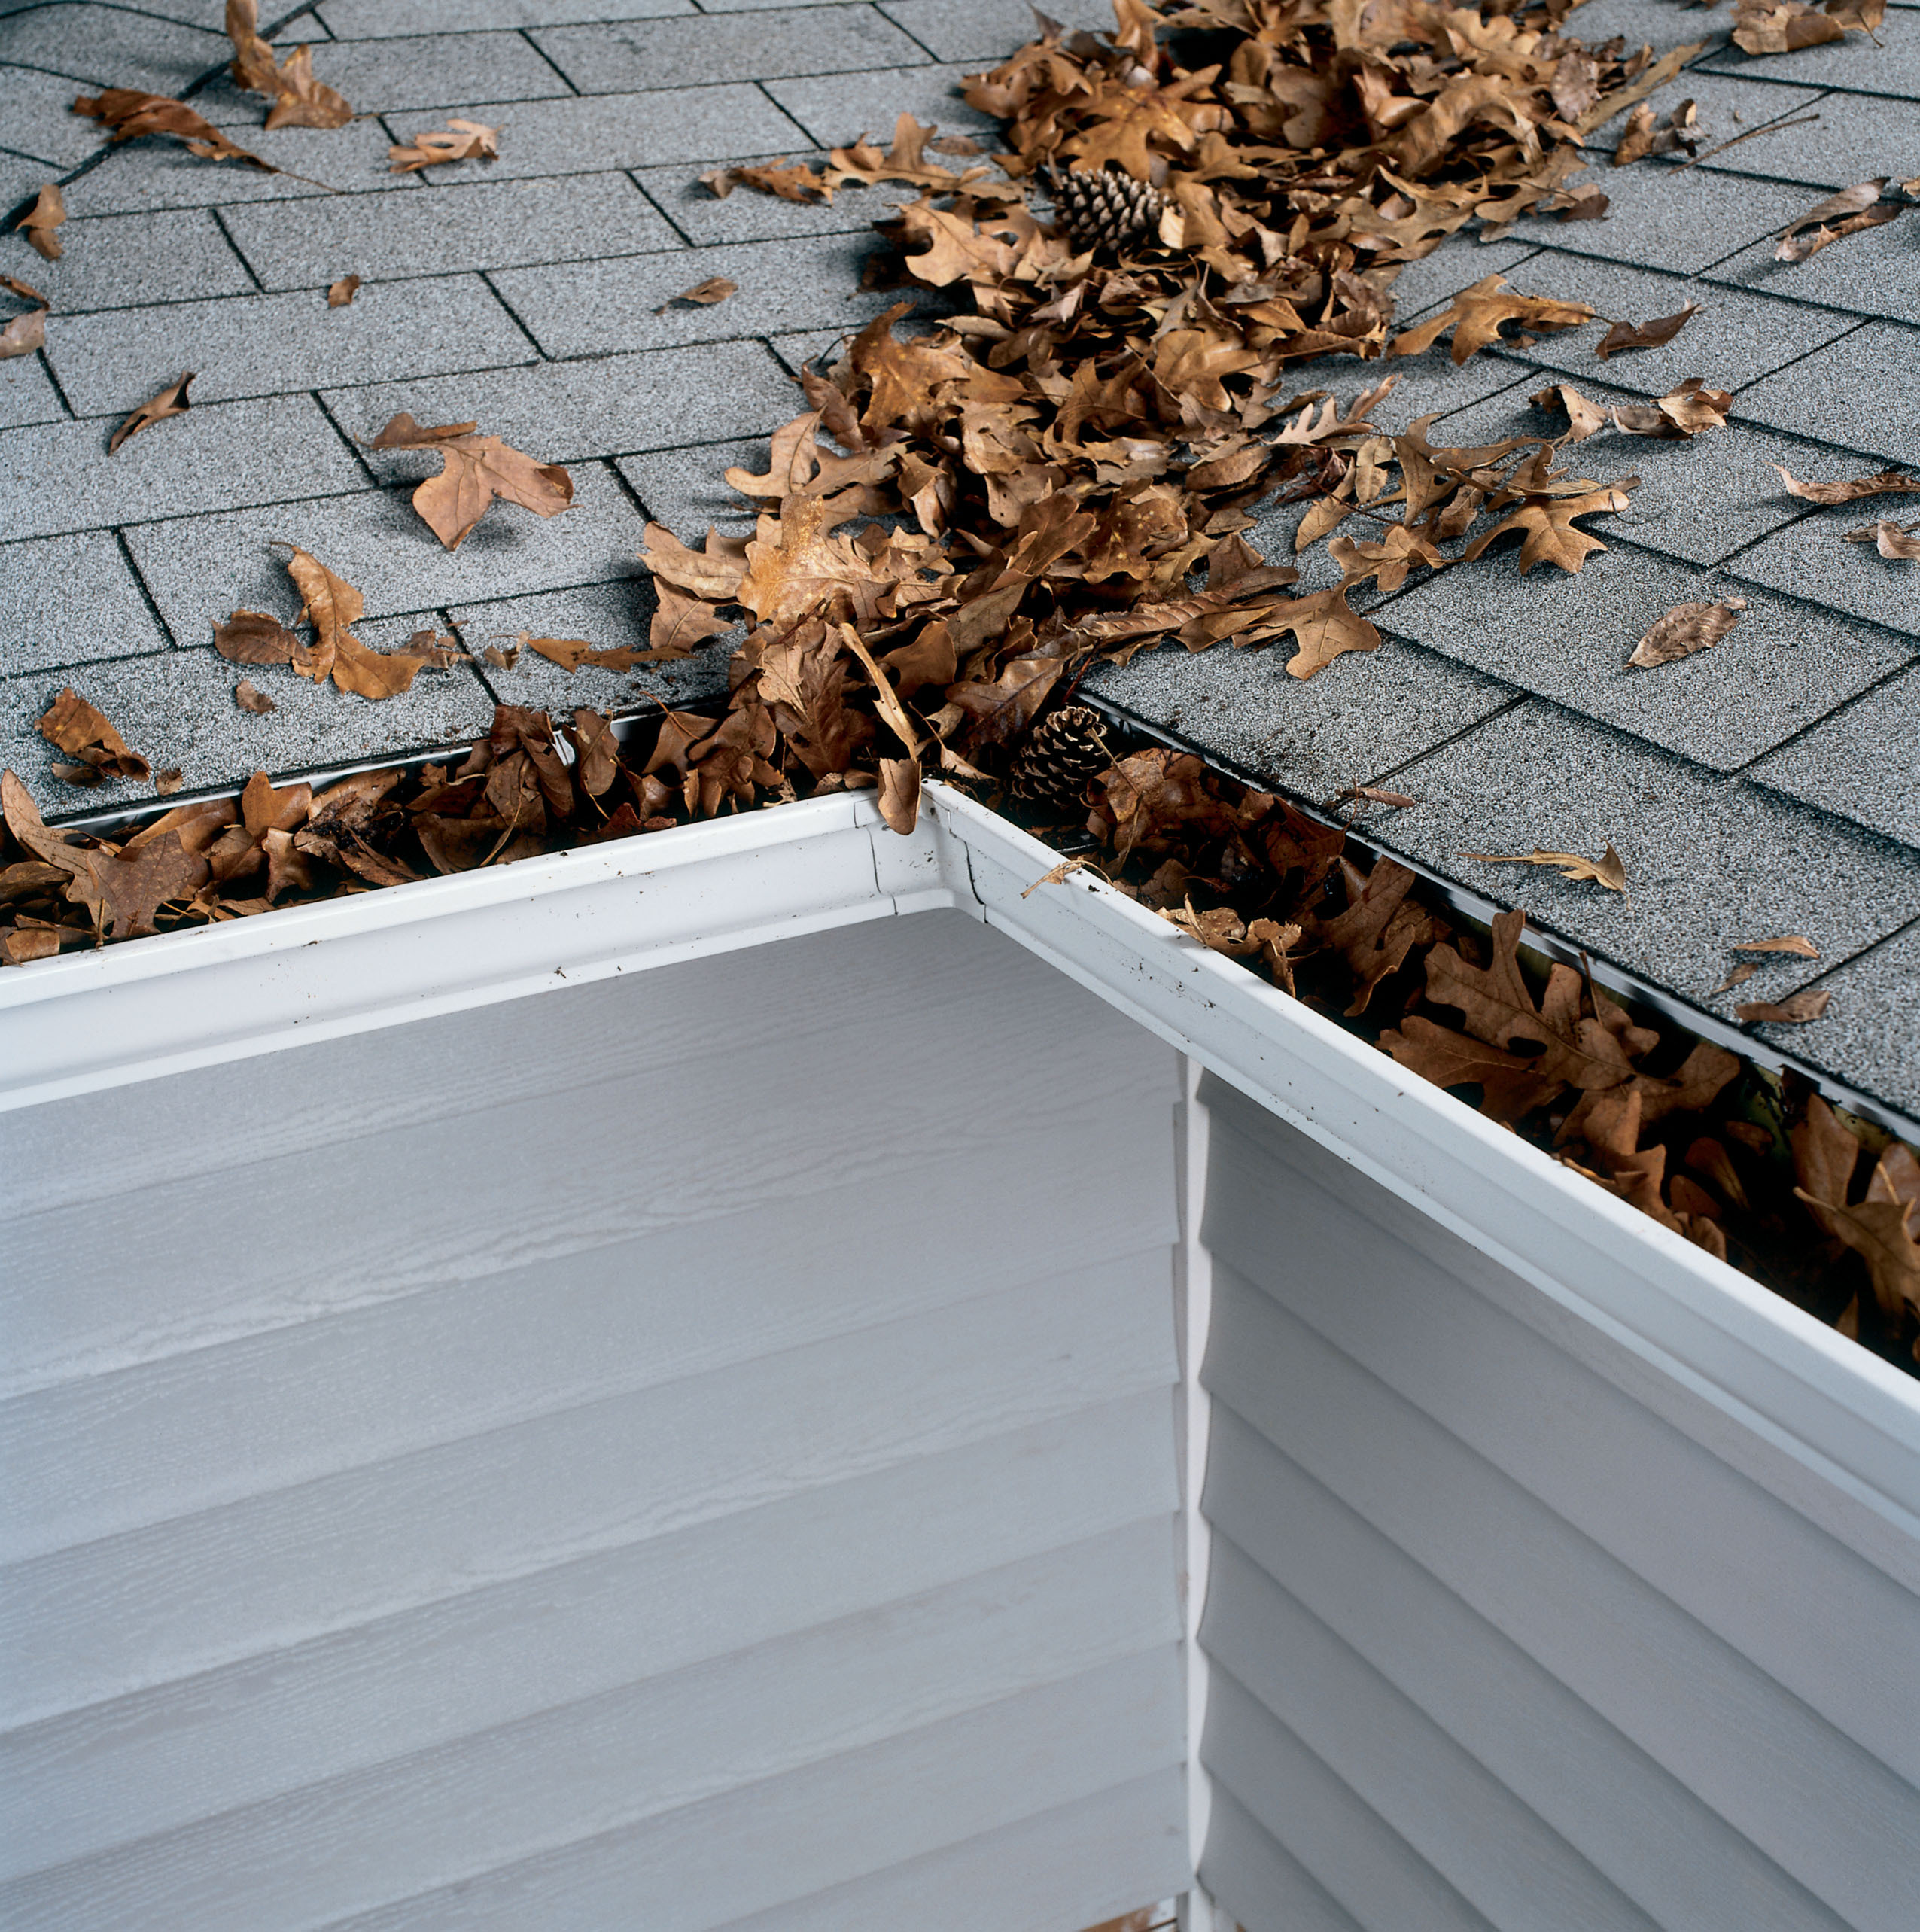 New England Gutters That Are Clogged With Debris Do Not